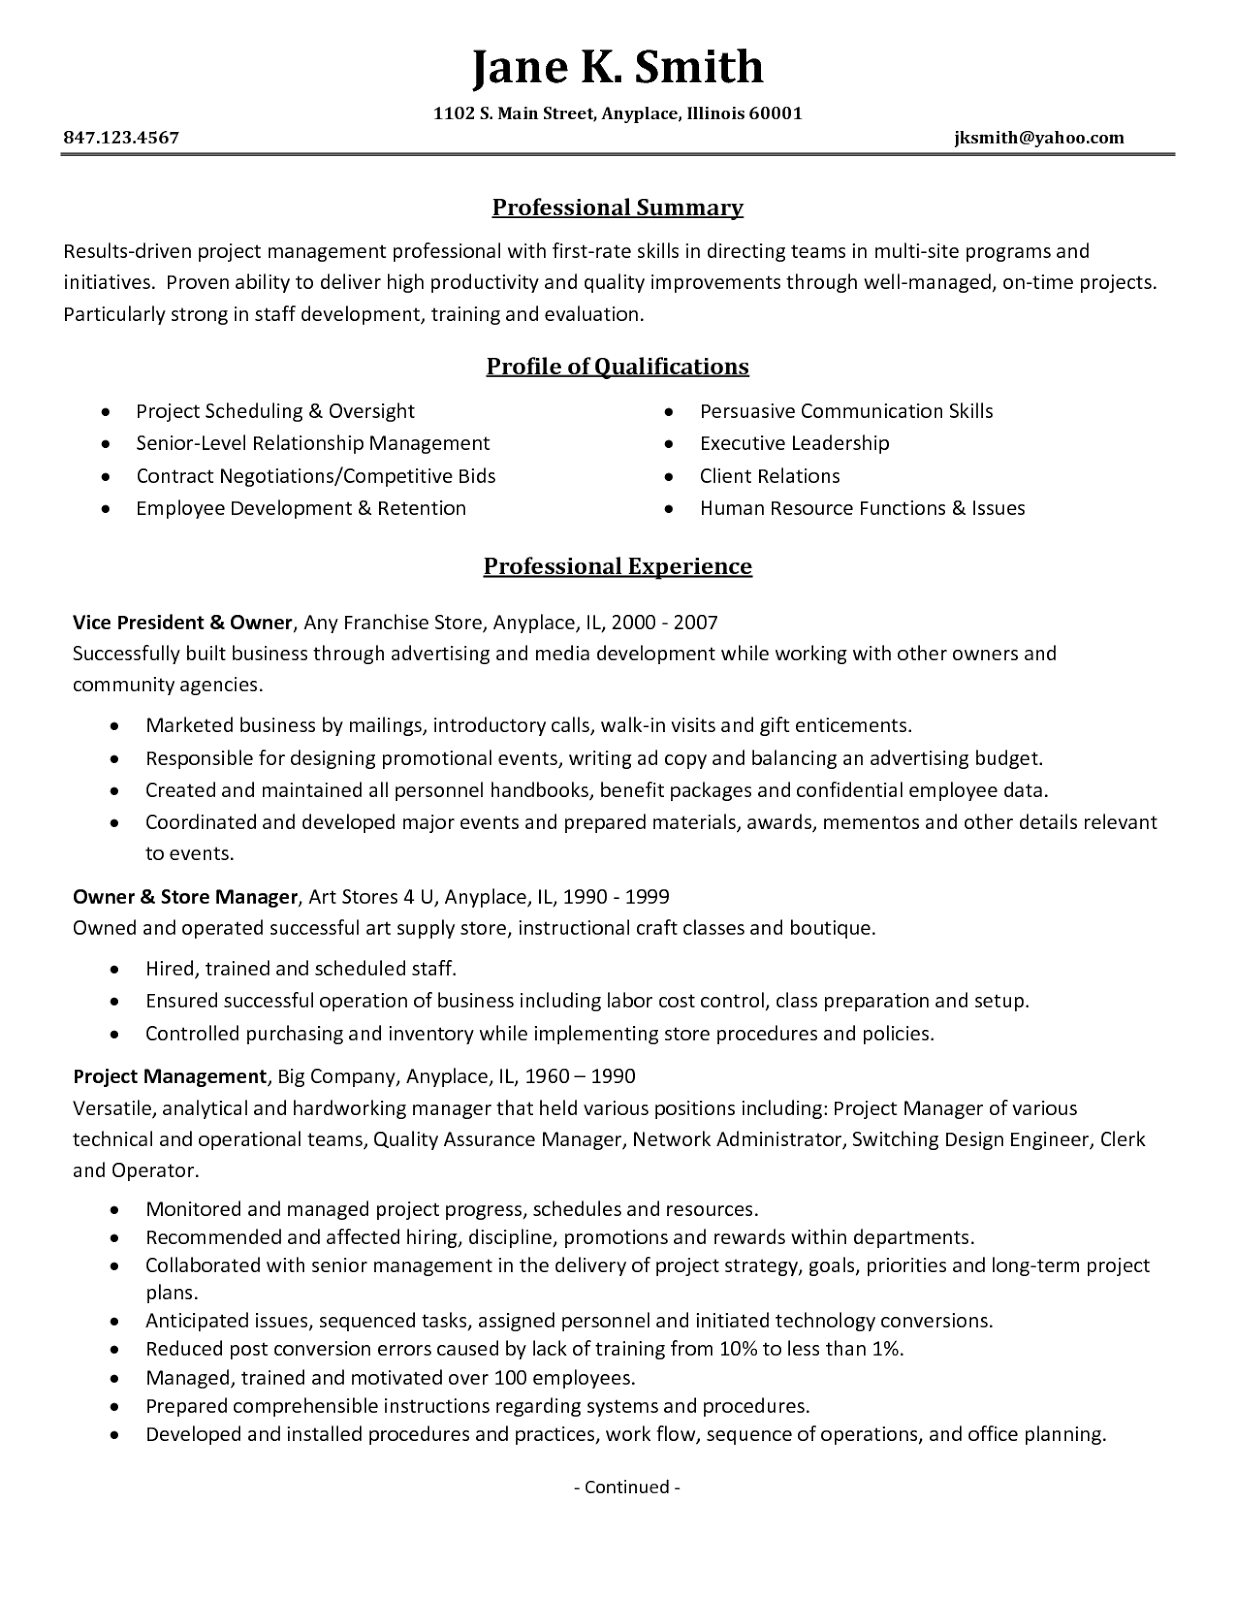 creative audio engineer resume for worked television engineering junior project manager resume urban design guidelines manager television program director resume